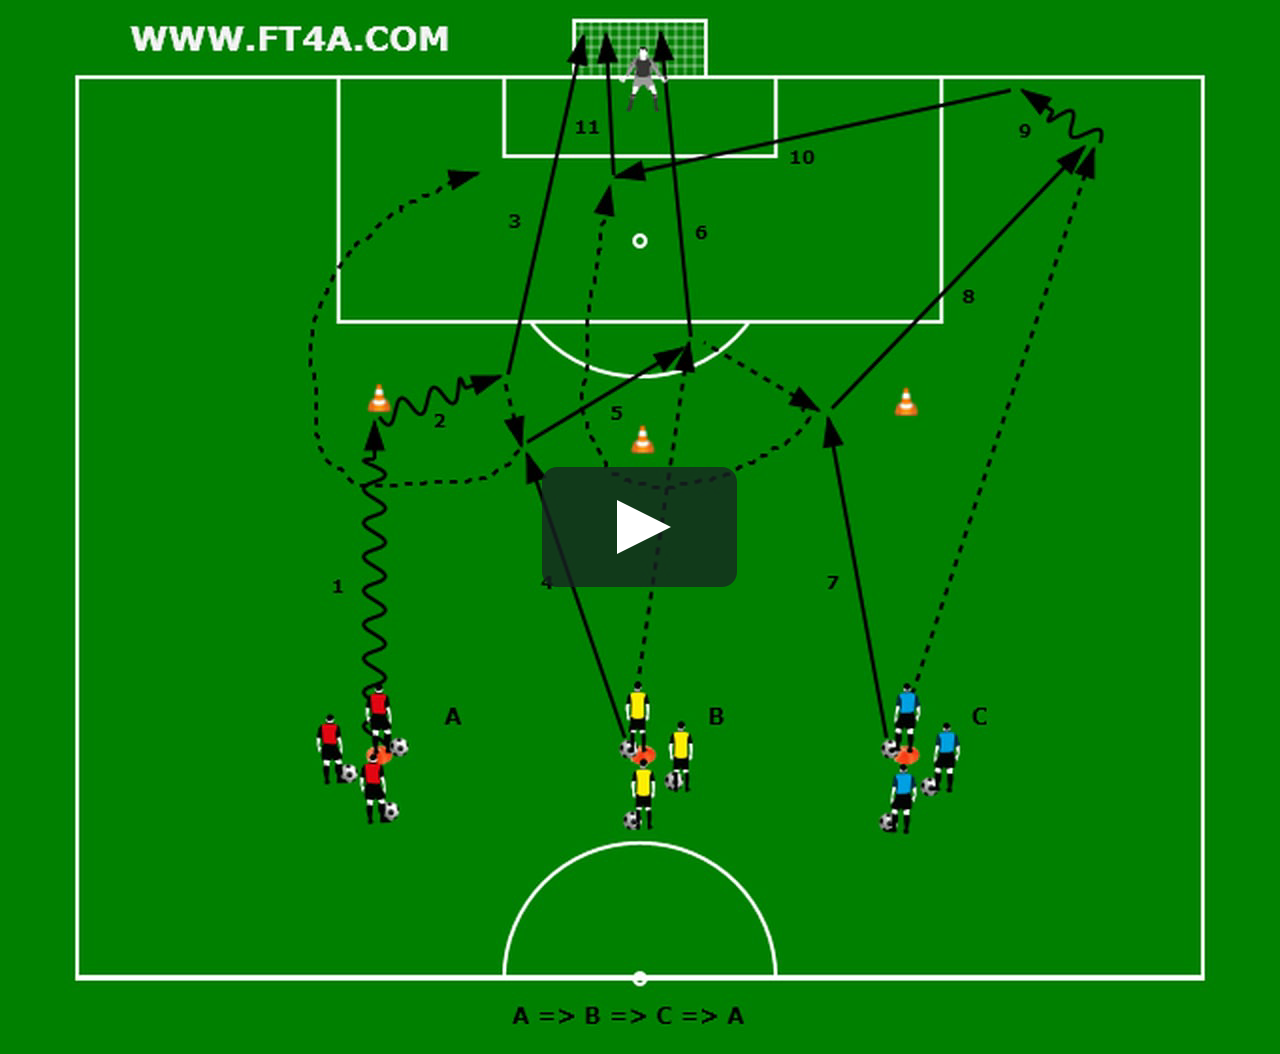 This Is Scoring 2 By Footballtraining4all On Vimeo The Home For High Quality Videos And The People Who Love Them Soccer Drills Soccer Soccer Training